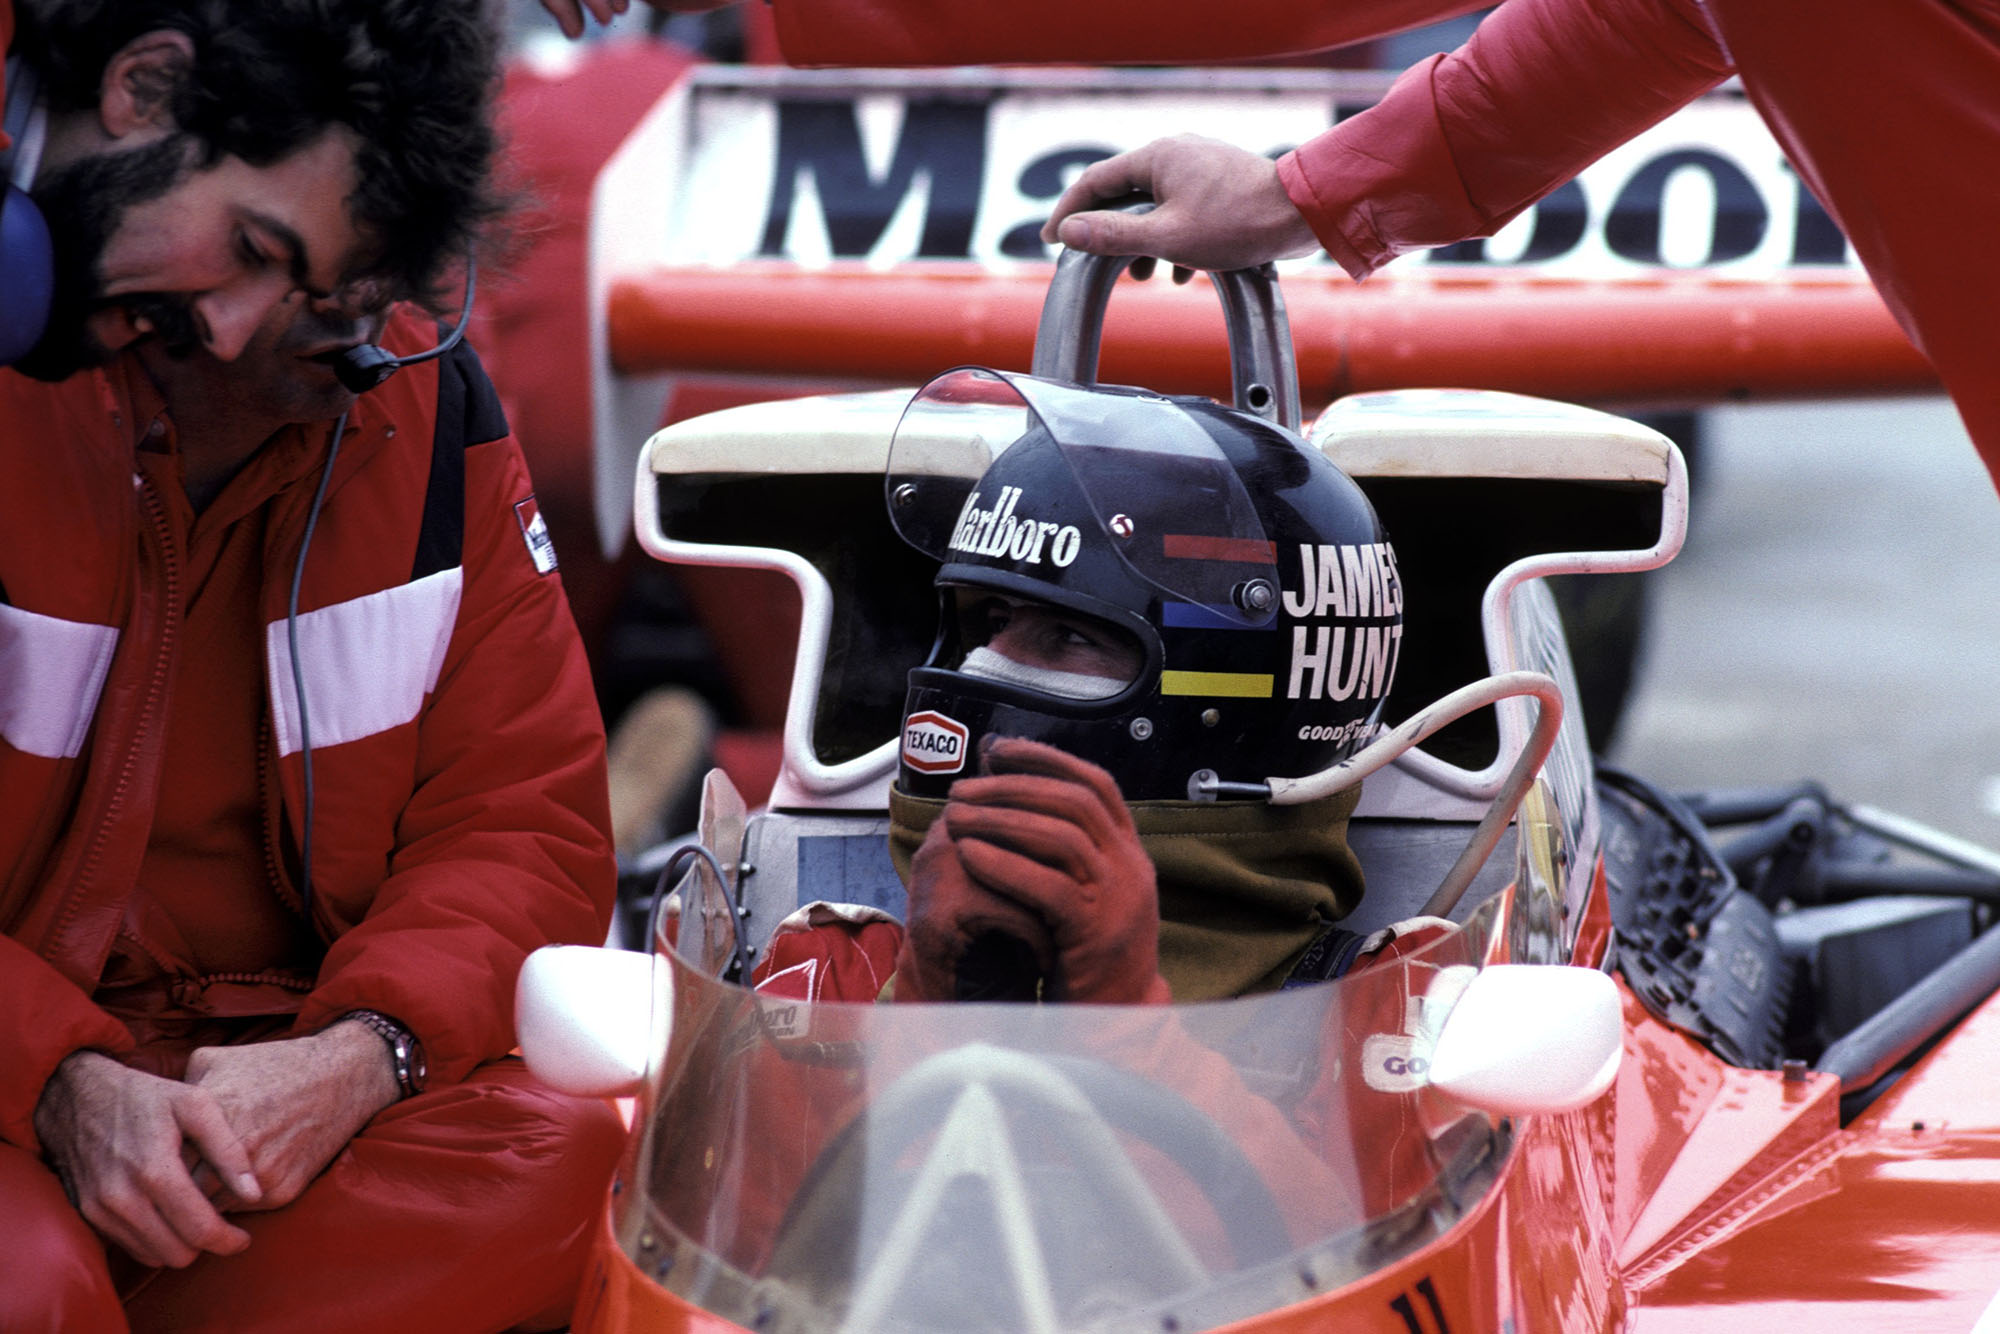 James Hunt (McLaren) sits in his car at the 1976 United States Grand Prix East, Watkins Glen.